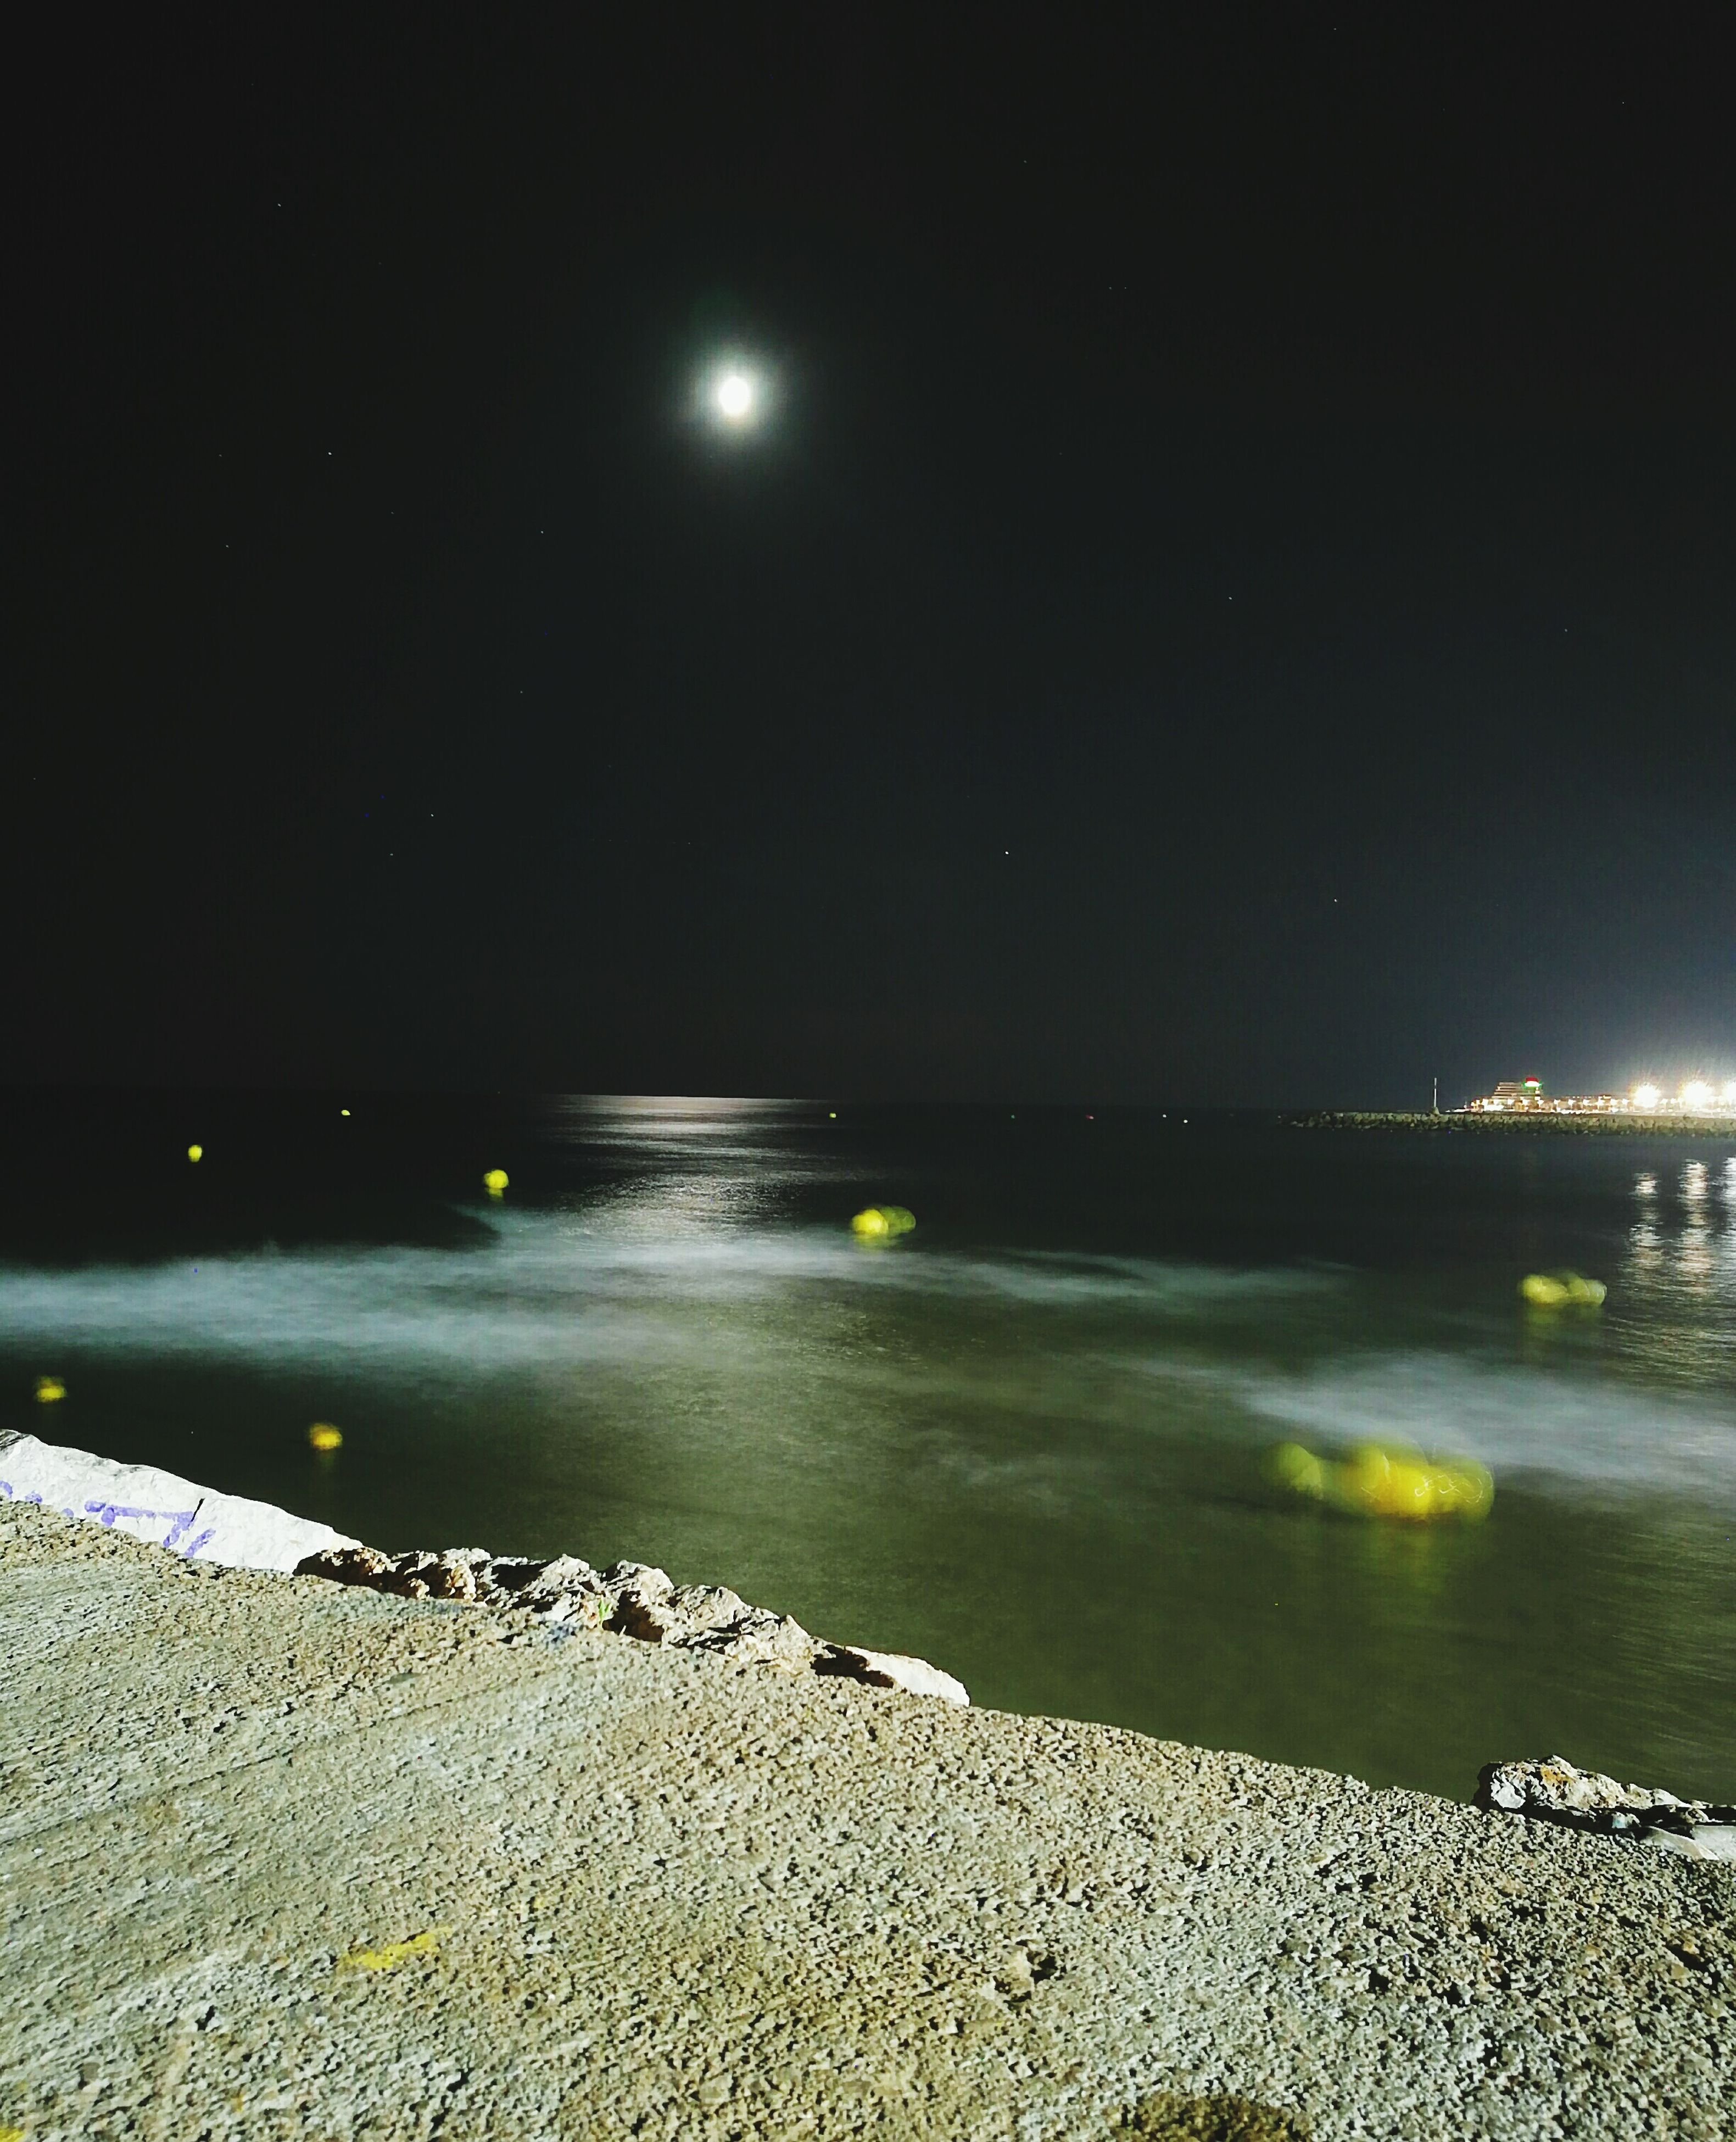 night, beach, water, tranquil scene, scenics, sand, sea, tranquility, shore, beauty in nature, idyllic, moon, summer, majestic, nature, illuminated, travel destinations, sky, vacations, tourism, seascape, outdoors, remote, tide, non-urban scene, coastline